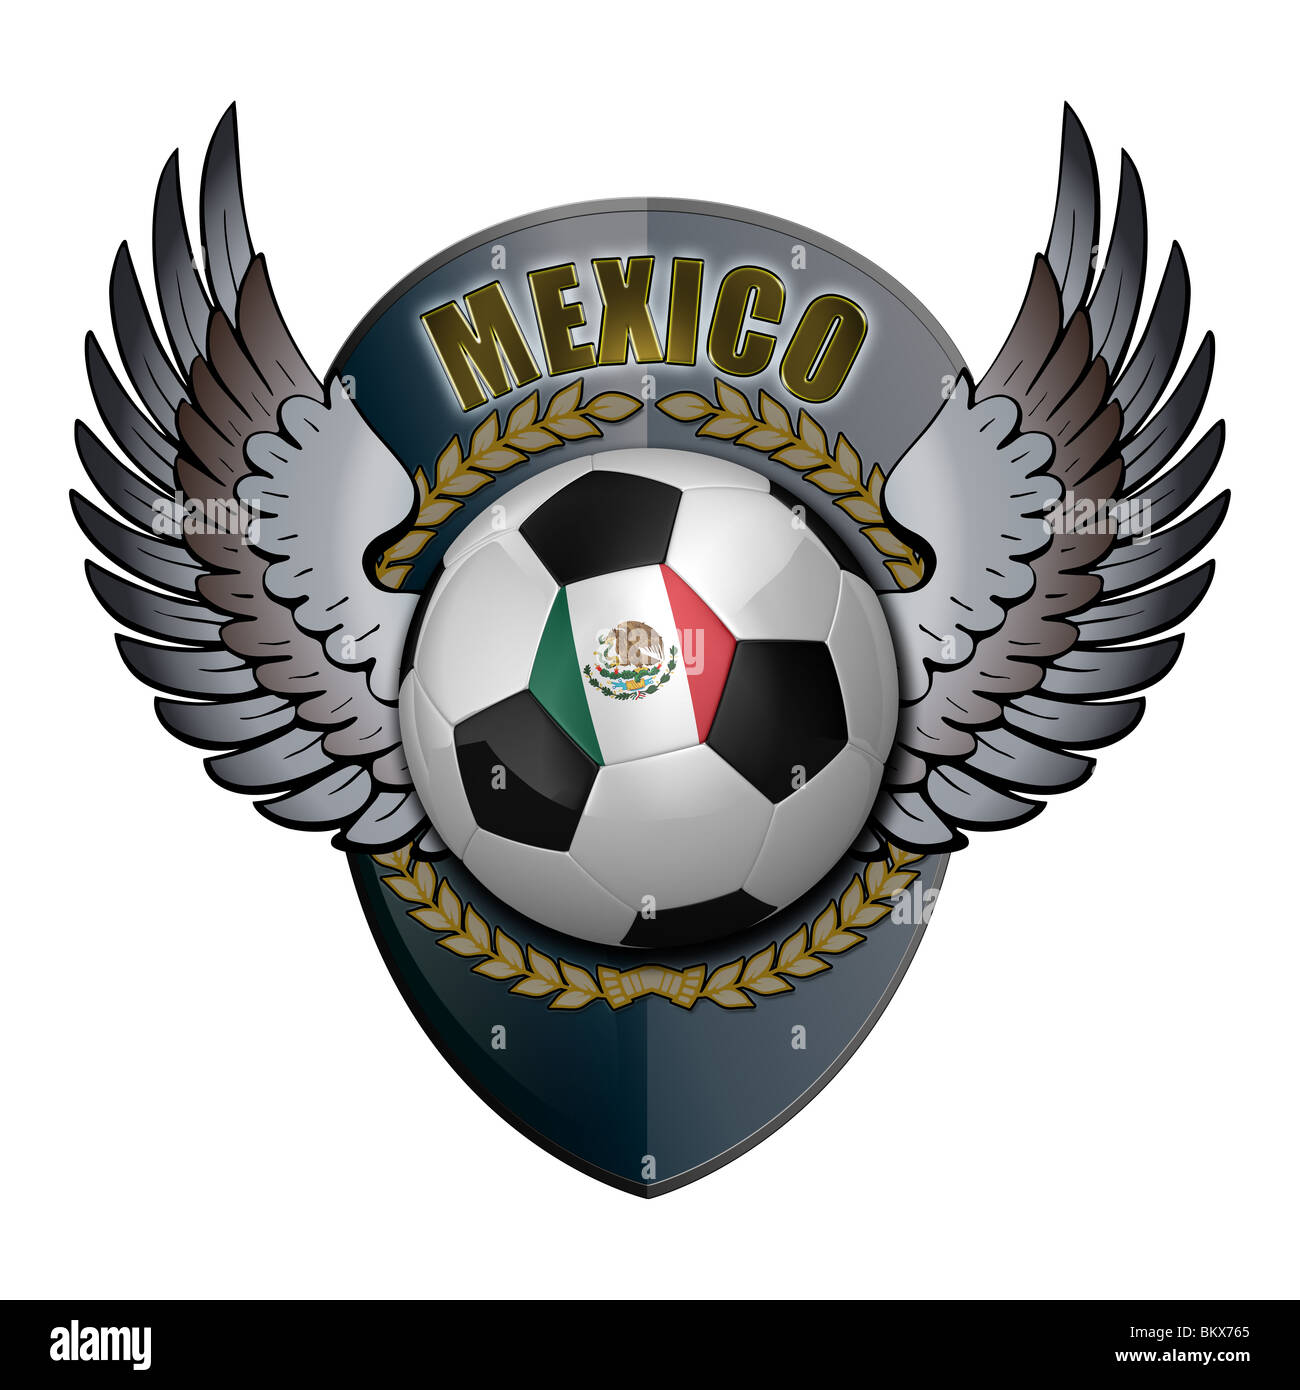 Mexican soccer ball with crest - Stock Image